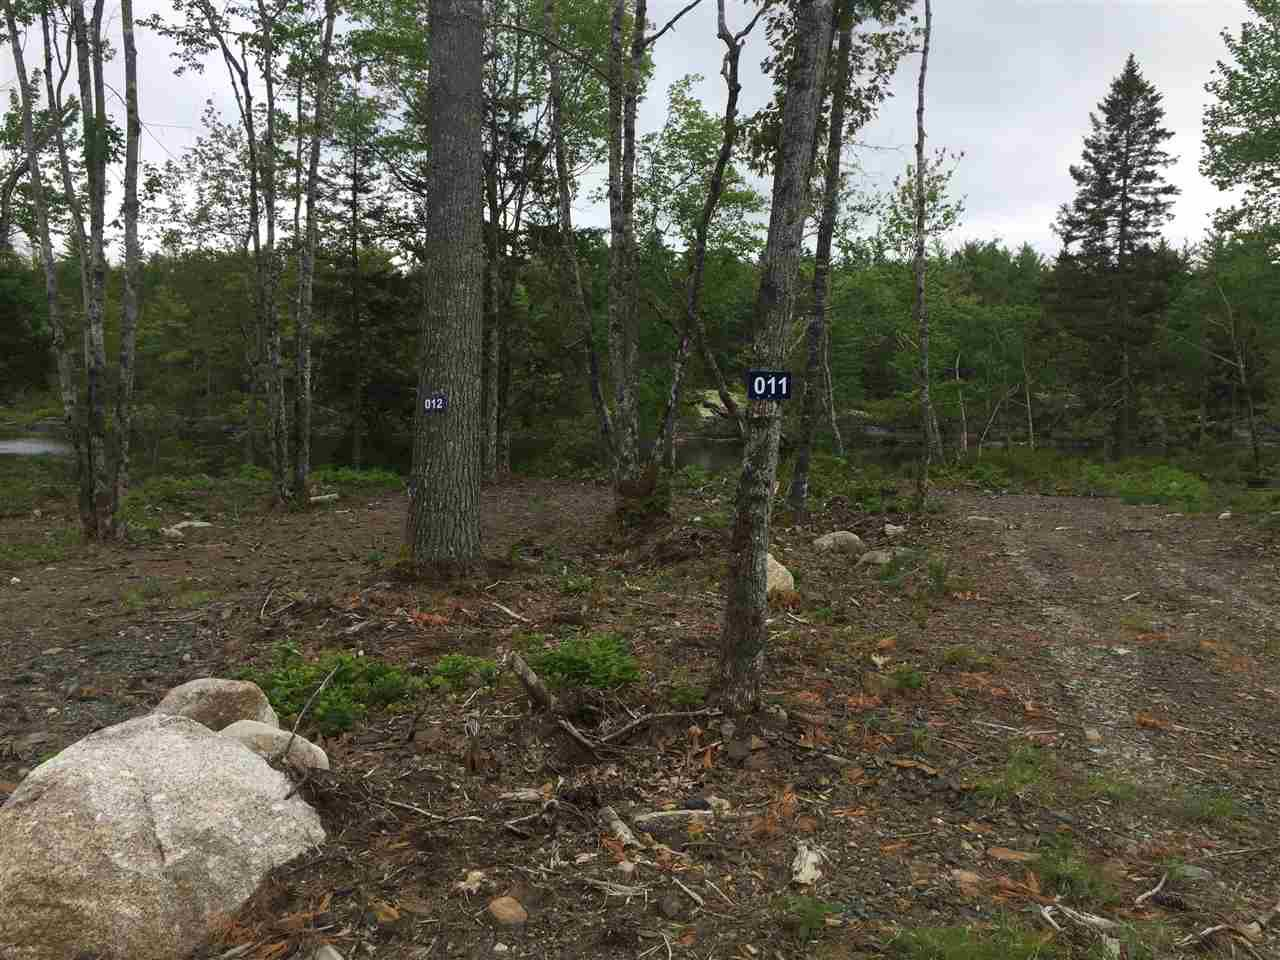 Photo 6: Photos: 6720 Hwy 325 in West Clifford: 405-Lunenburg County Commercial for sale (South Shore)  : MLS®# 202011822